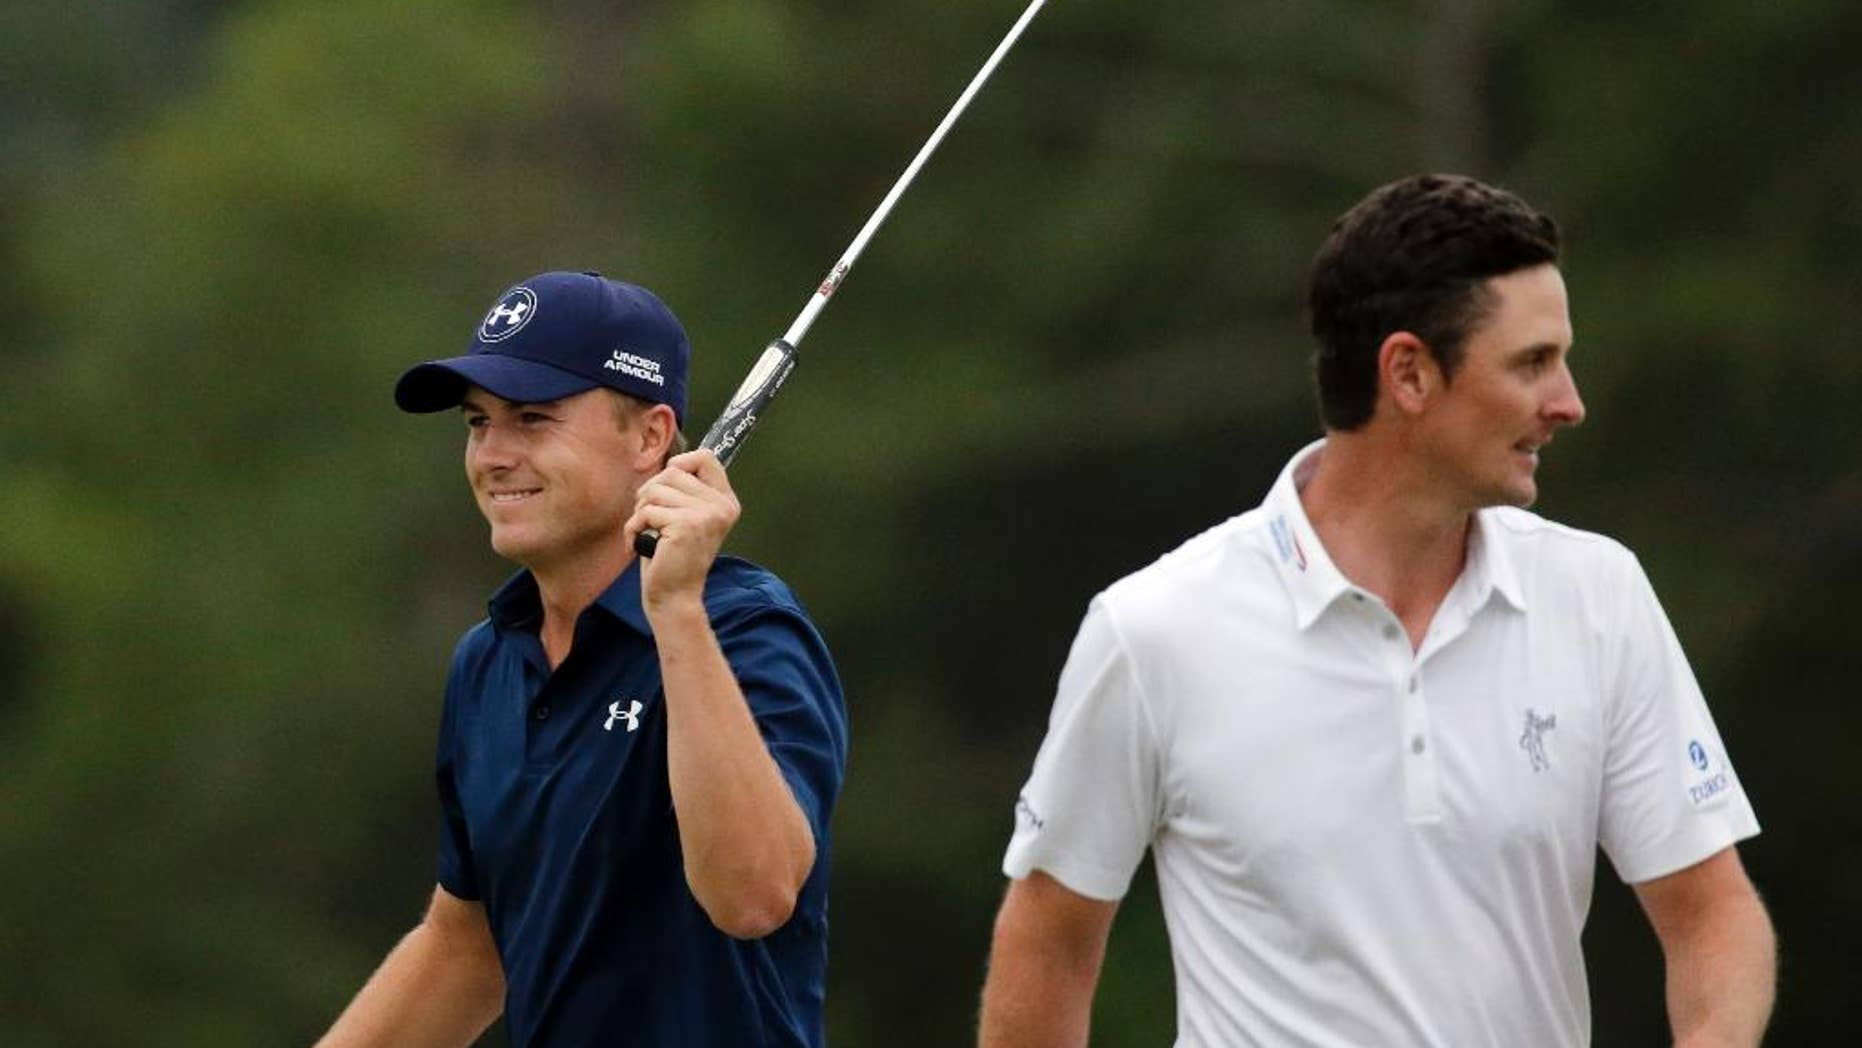 """FILE - In this April 12, 2015, file photo, Jordan Spieth, left, celebrates after winning the Masters golf tournament in Augusta, Ga., as Justin Rose, of England, walks away. Spieth is competing in match play for the second time this month. The first occasion was only in his mind. He was five shots clear of Rose when he made the turn at Augusta National and was trying to keep his mind off the green jacket ceremony. So he told himself he was 1 down to Rose in match play and """"let's play against him and see what we can do to get back."""" (AP Photo/Chris Carlson, File)"""